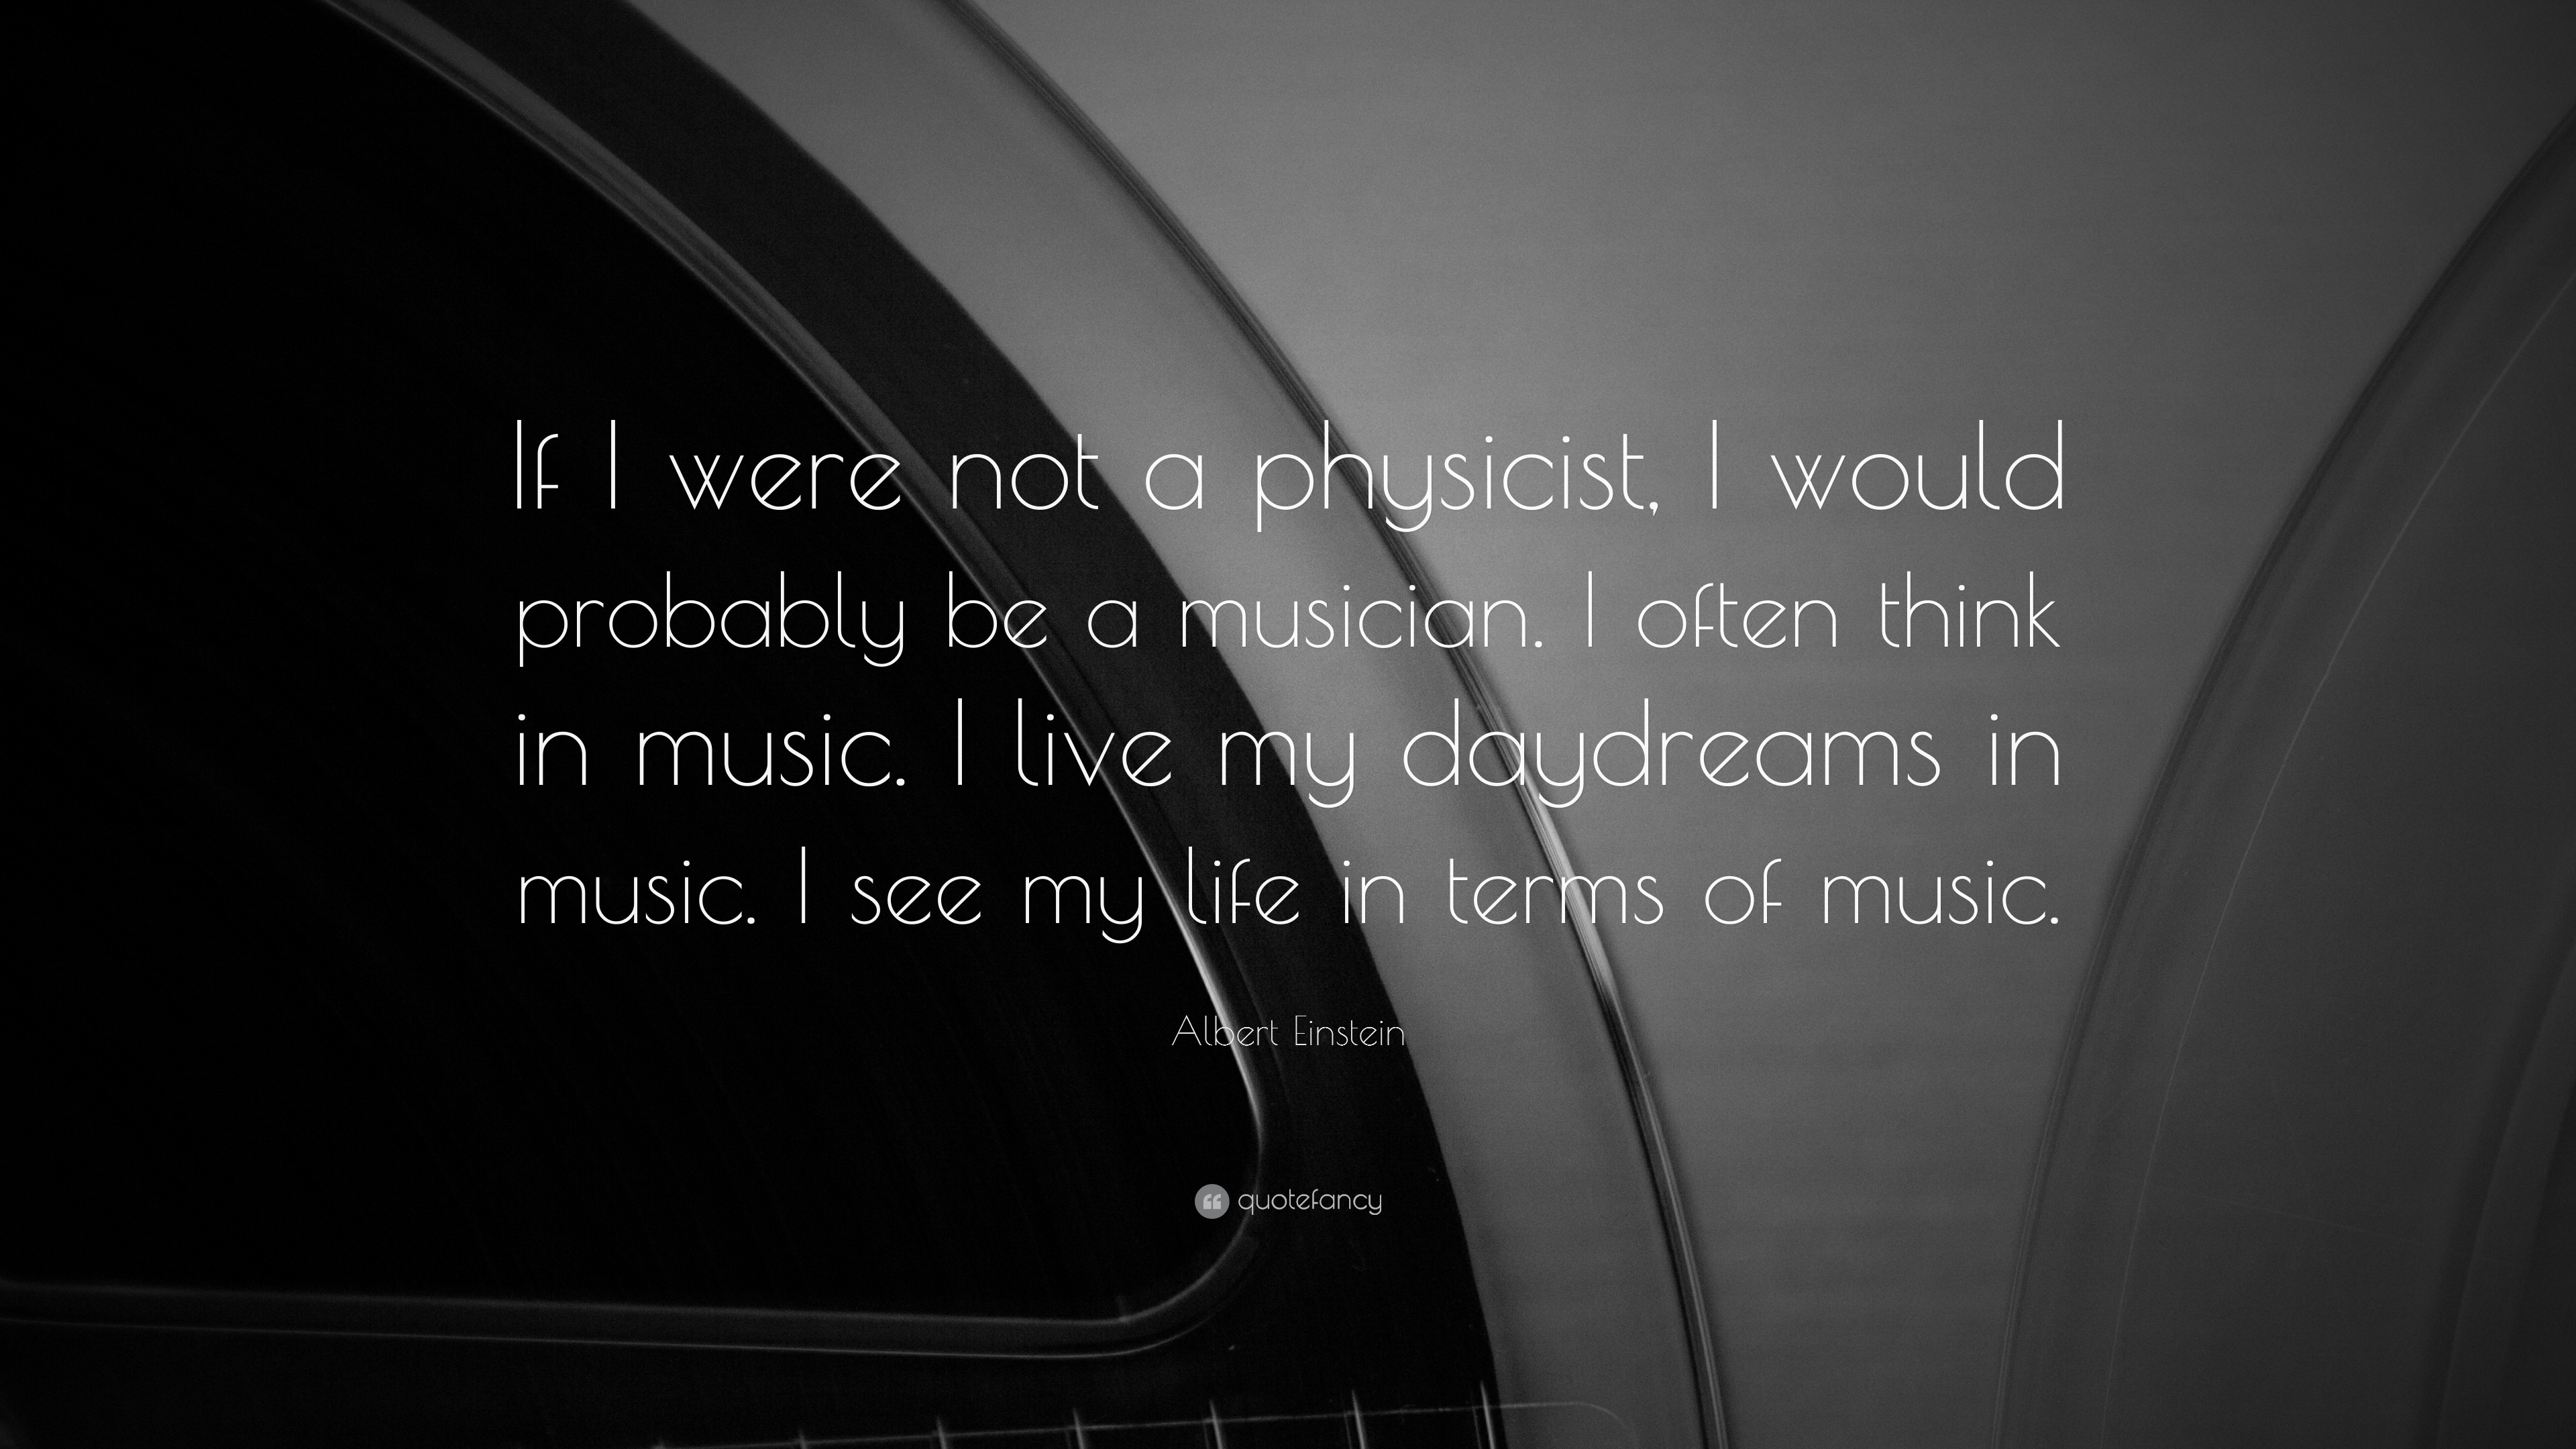 download music live my life